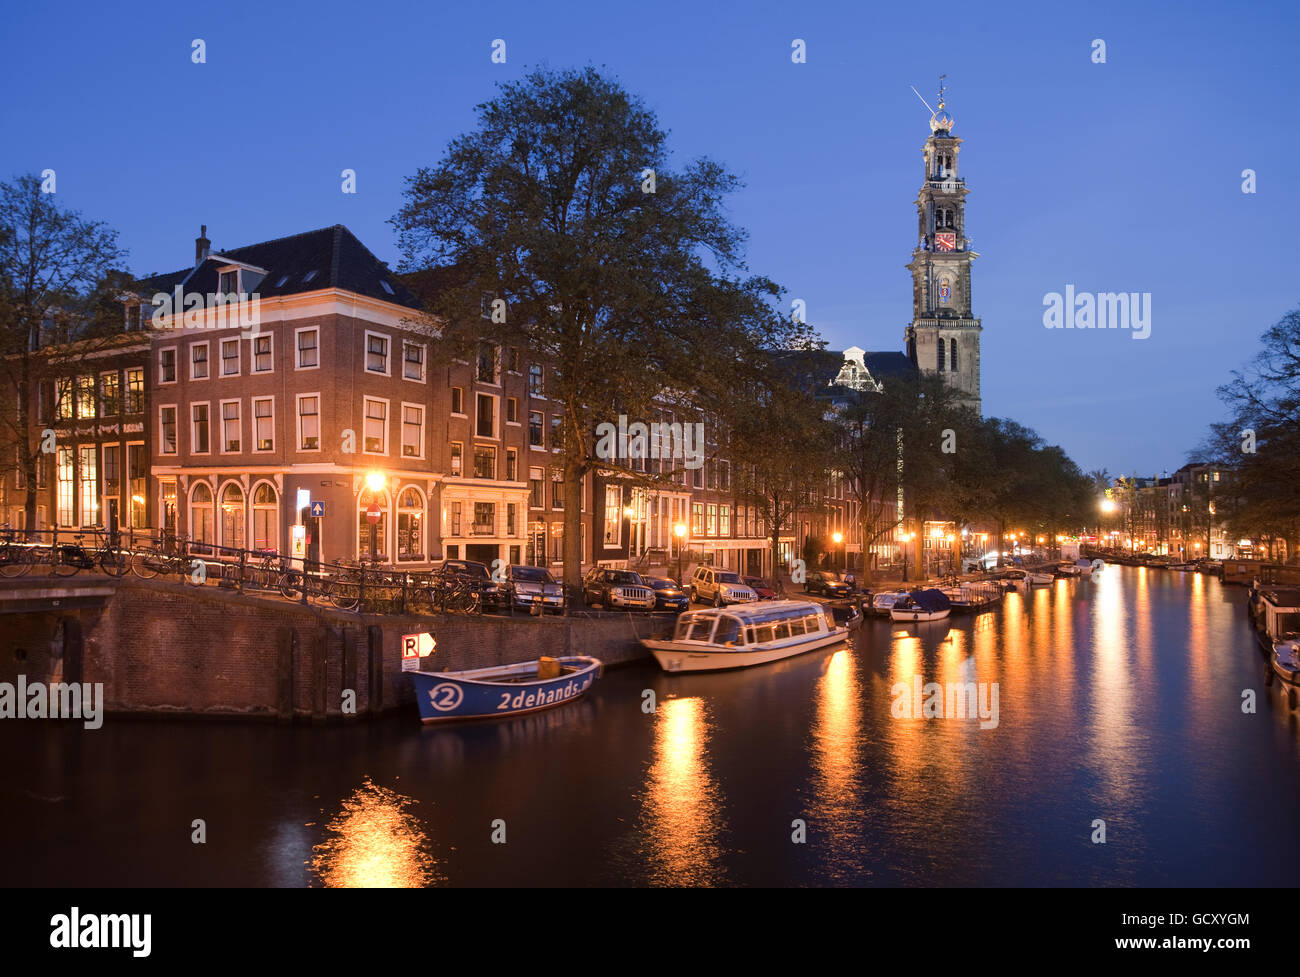 Westerkerk West Church with Westertoren bell tower, on the Prinsengracht canal, Amsterdam, Holland, Netherlands, - Stock Image